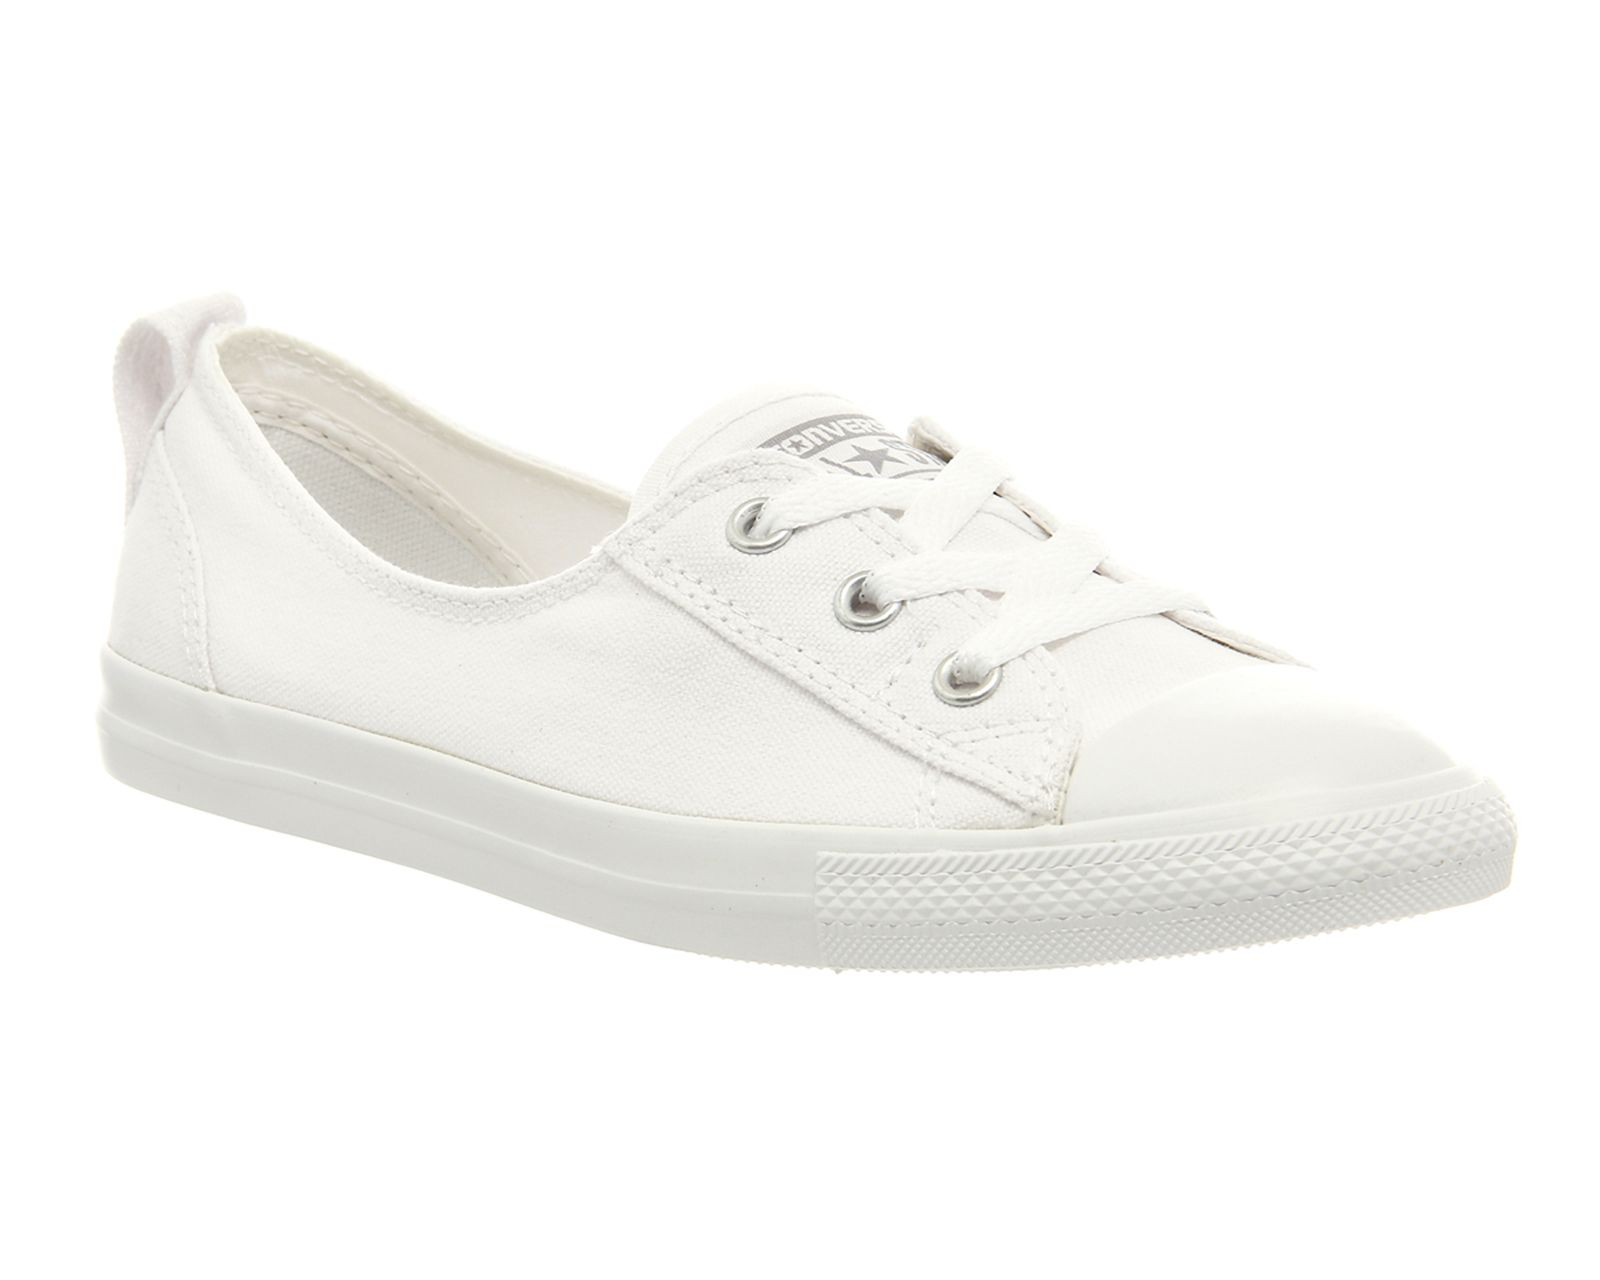 Converse Ctas Ballet Lace White Mono Exclusive - Hers trainers